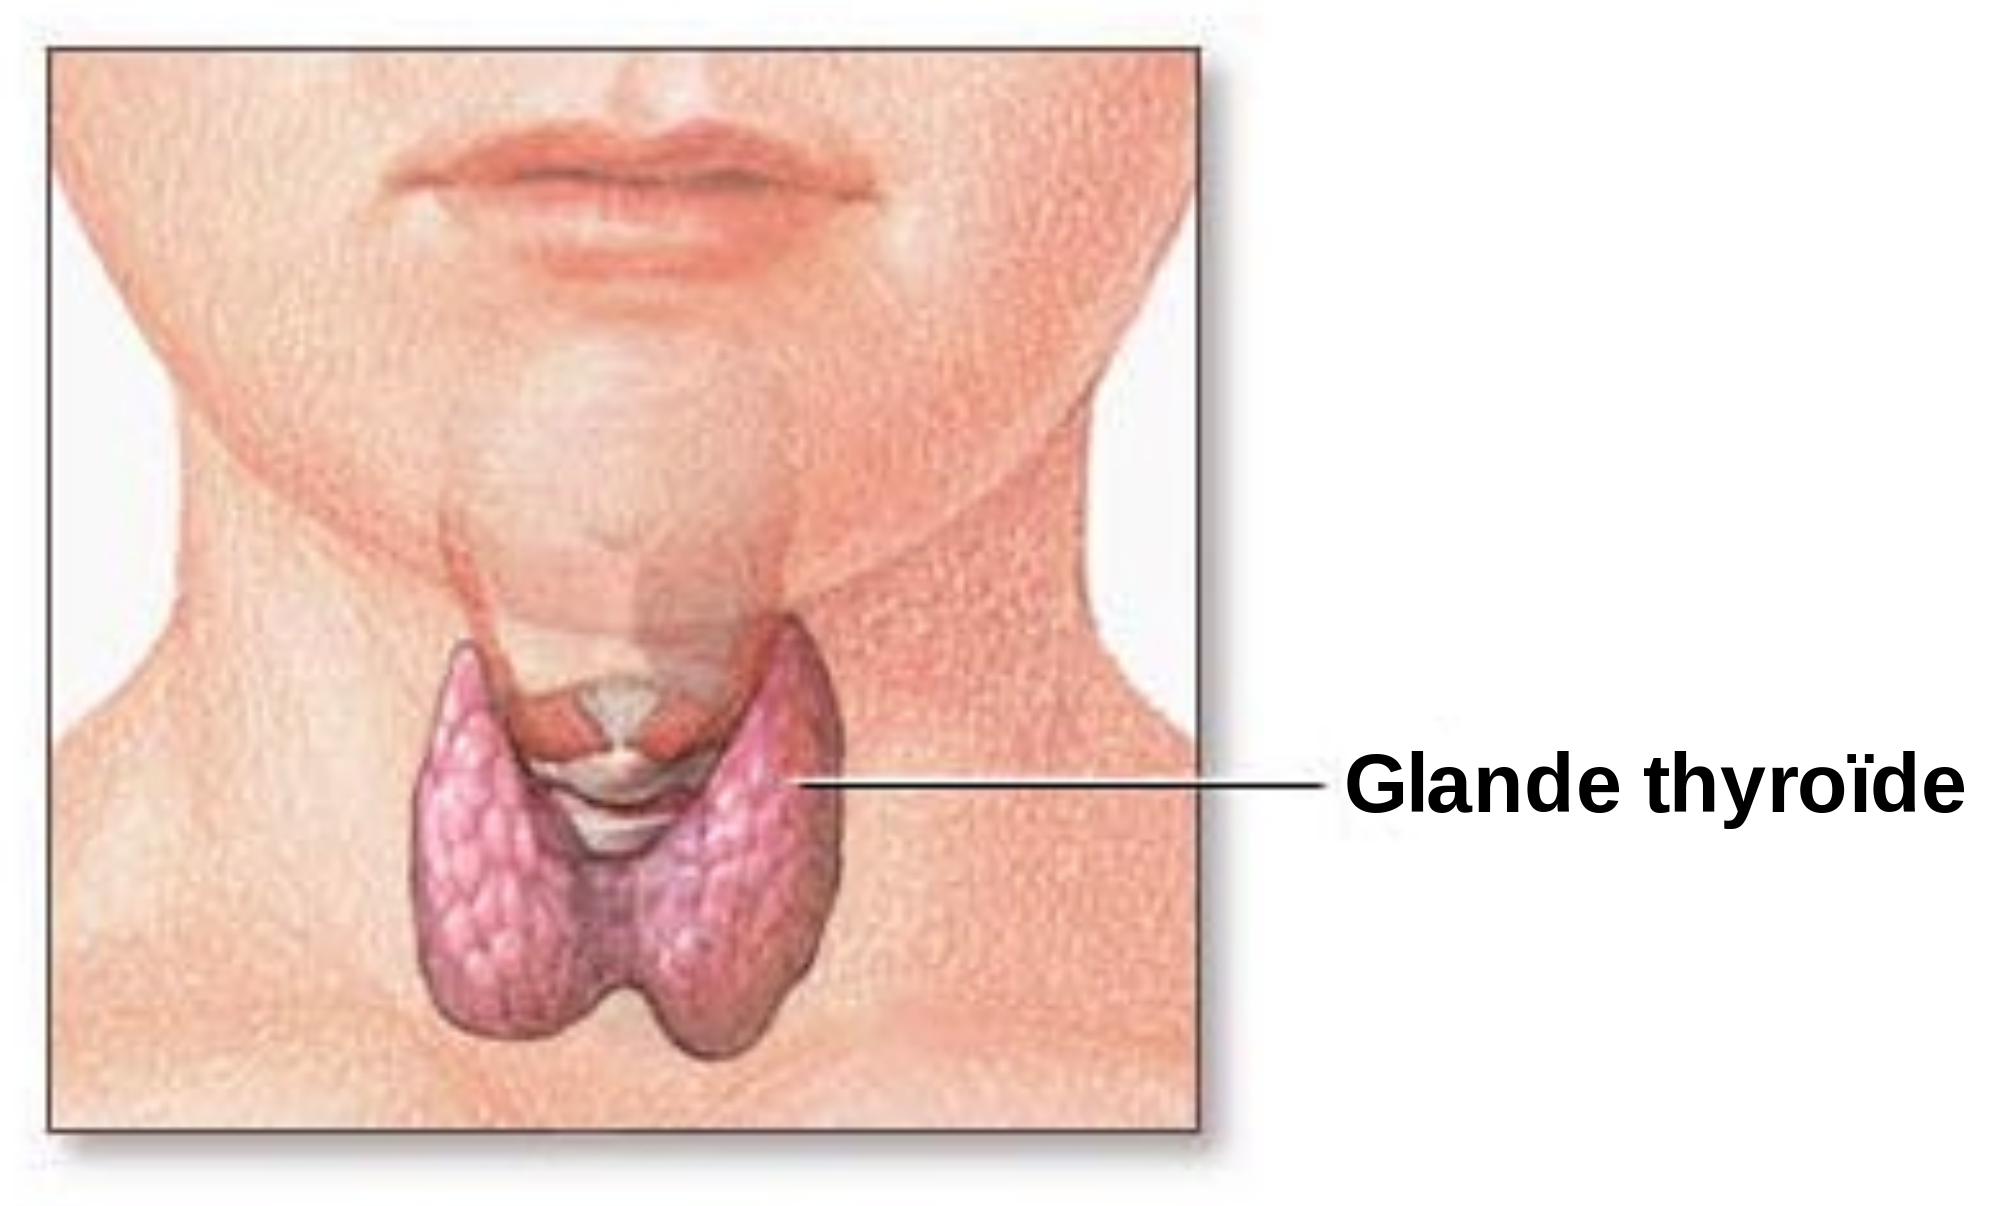 A picture showing the localization and shape of the thyroid gland.